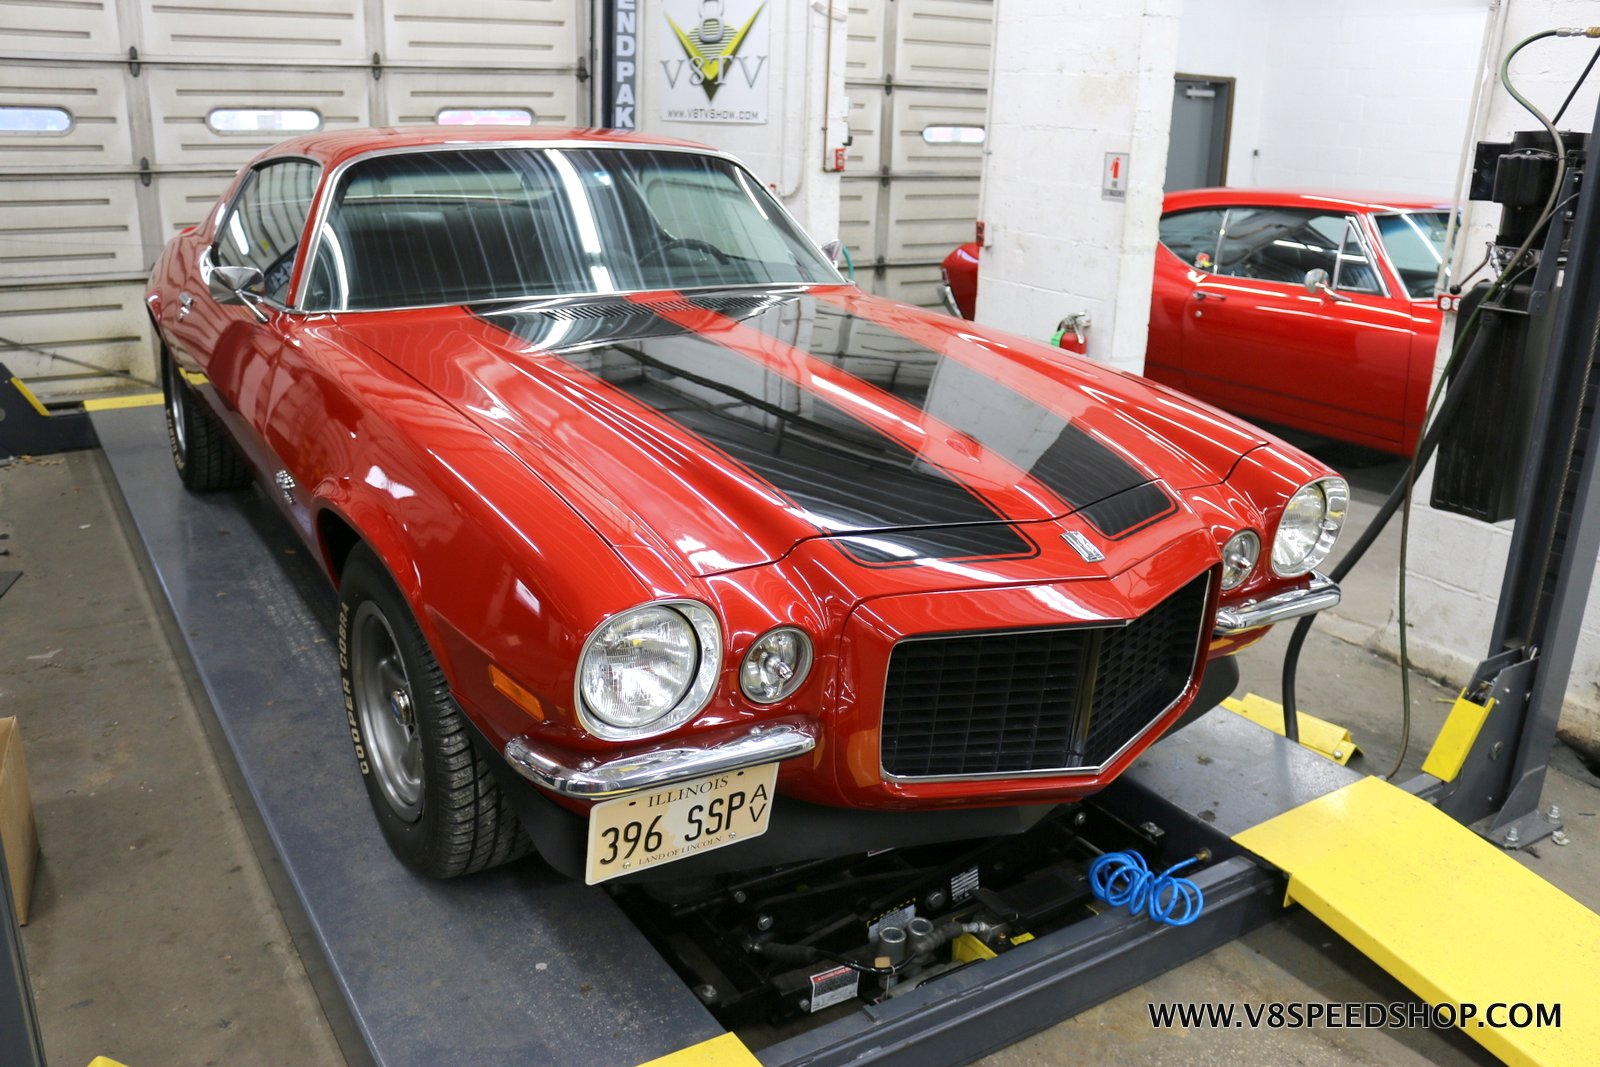 1970 Chevrolet Camaro SS396 Restoration Photo Gallery at V8 Speed & Resto Shop